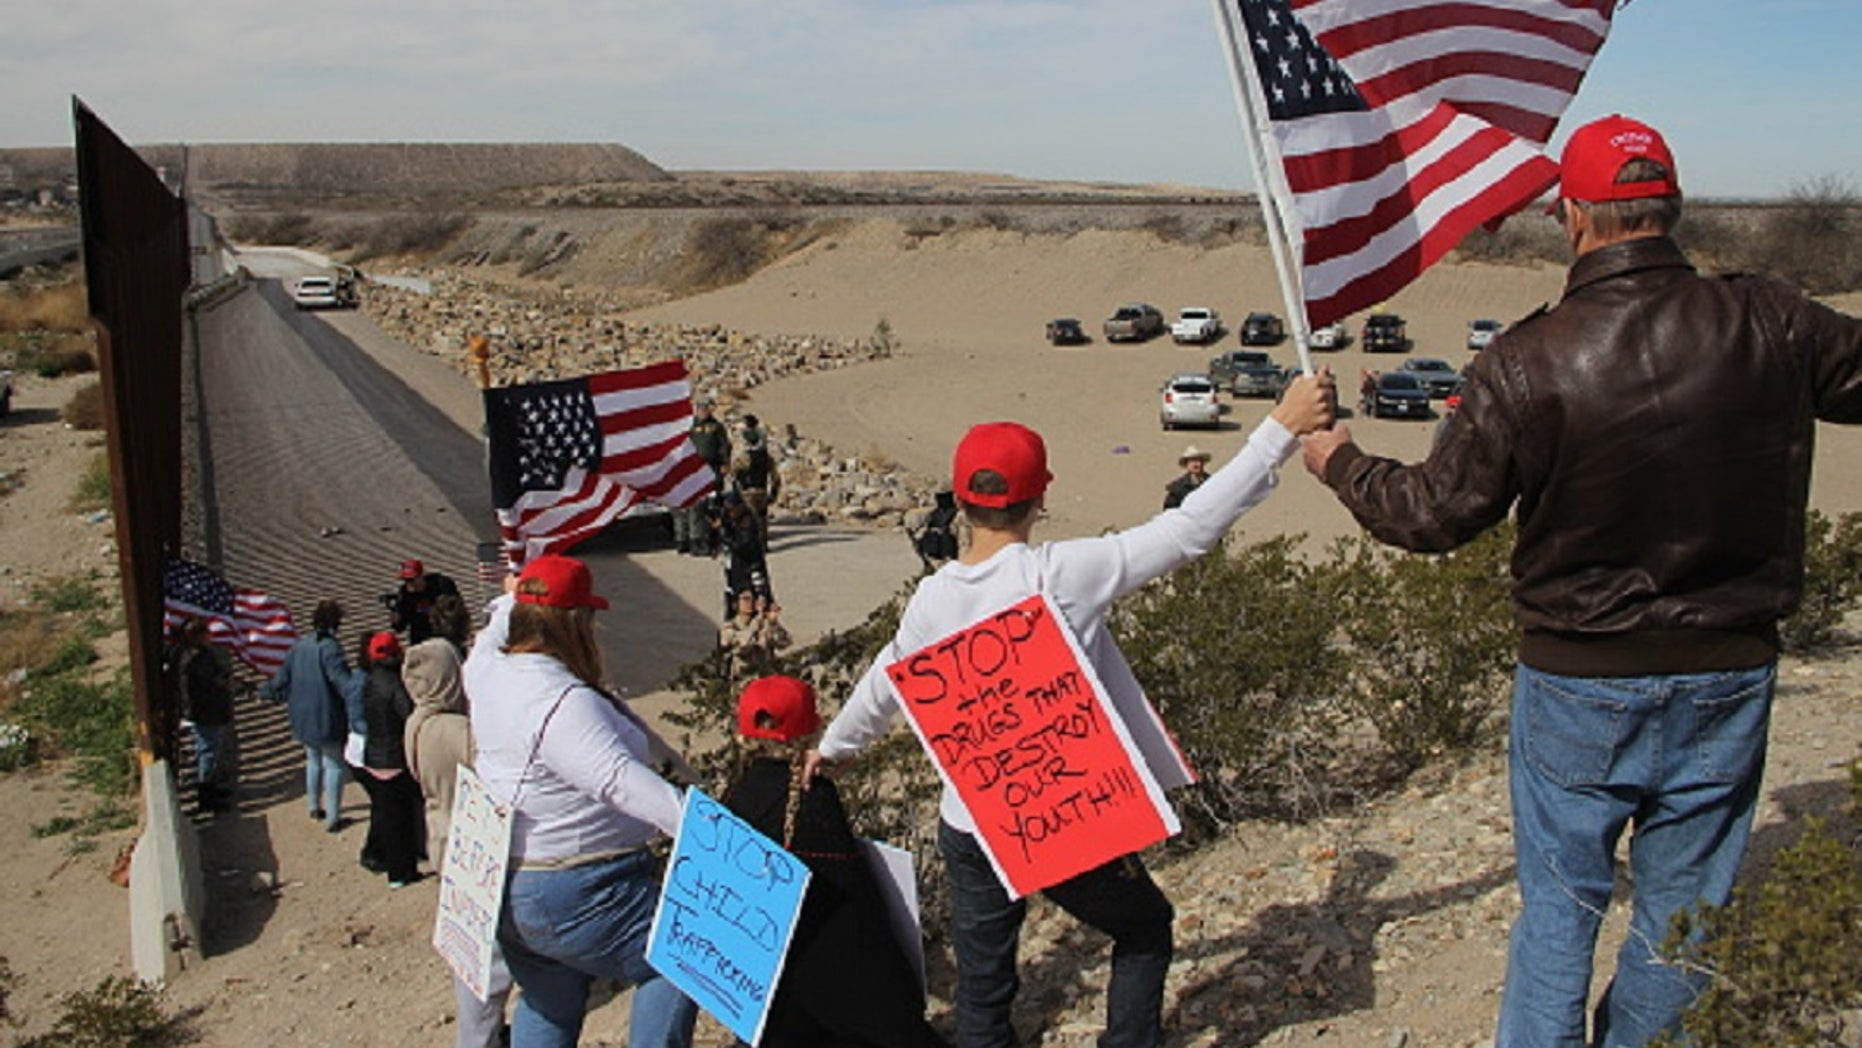 Supporters of U.S. border security make a human wall to demonstrate their support for a border wall between the U.S. and Mexico, at Sunland Park, N.M., Feb. 9, 2019. (Hericka Martinez/AFP/Getty Images)